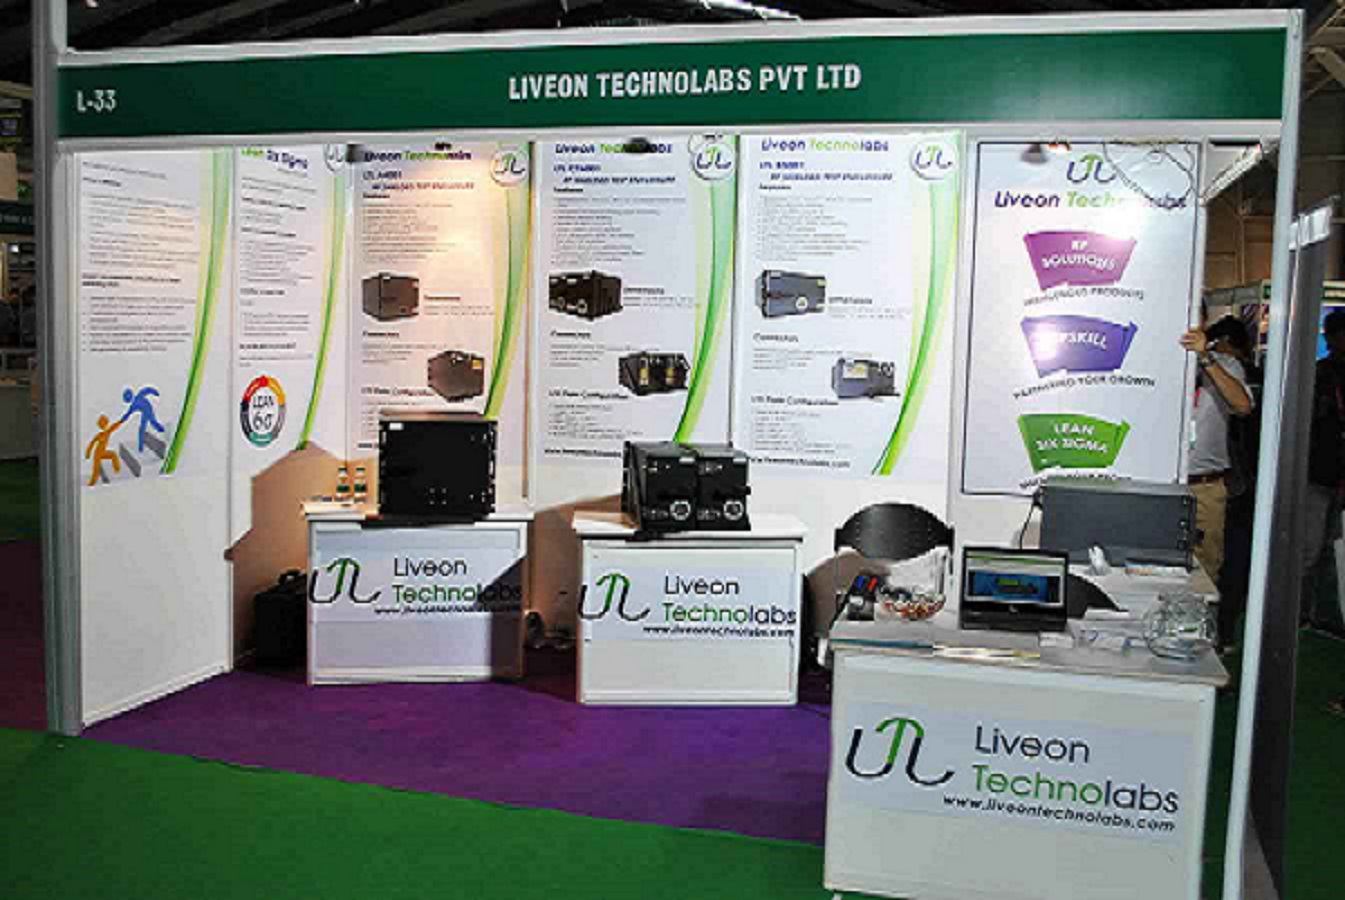 liveon technolabs expo-2018